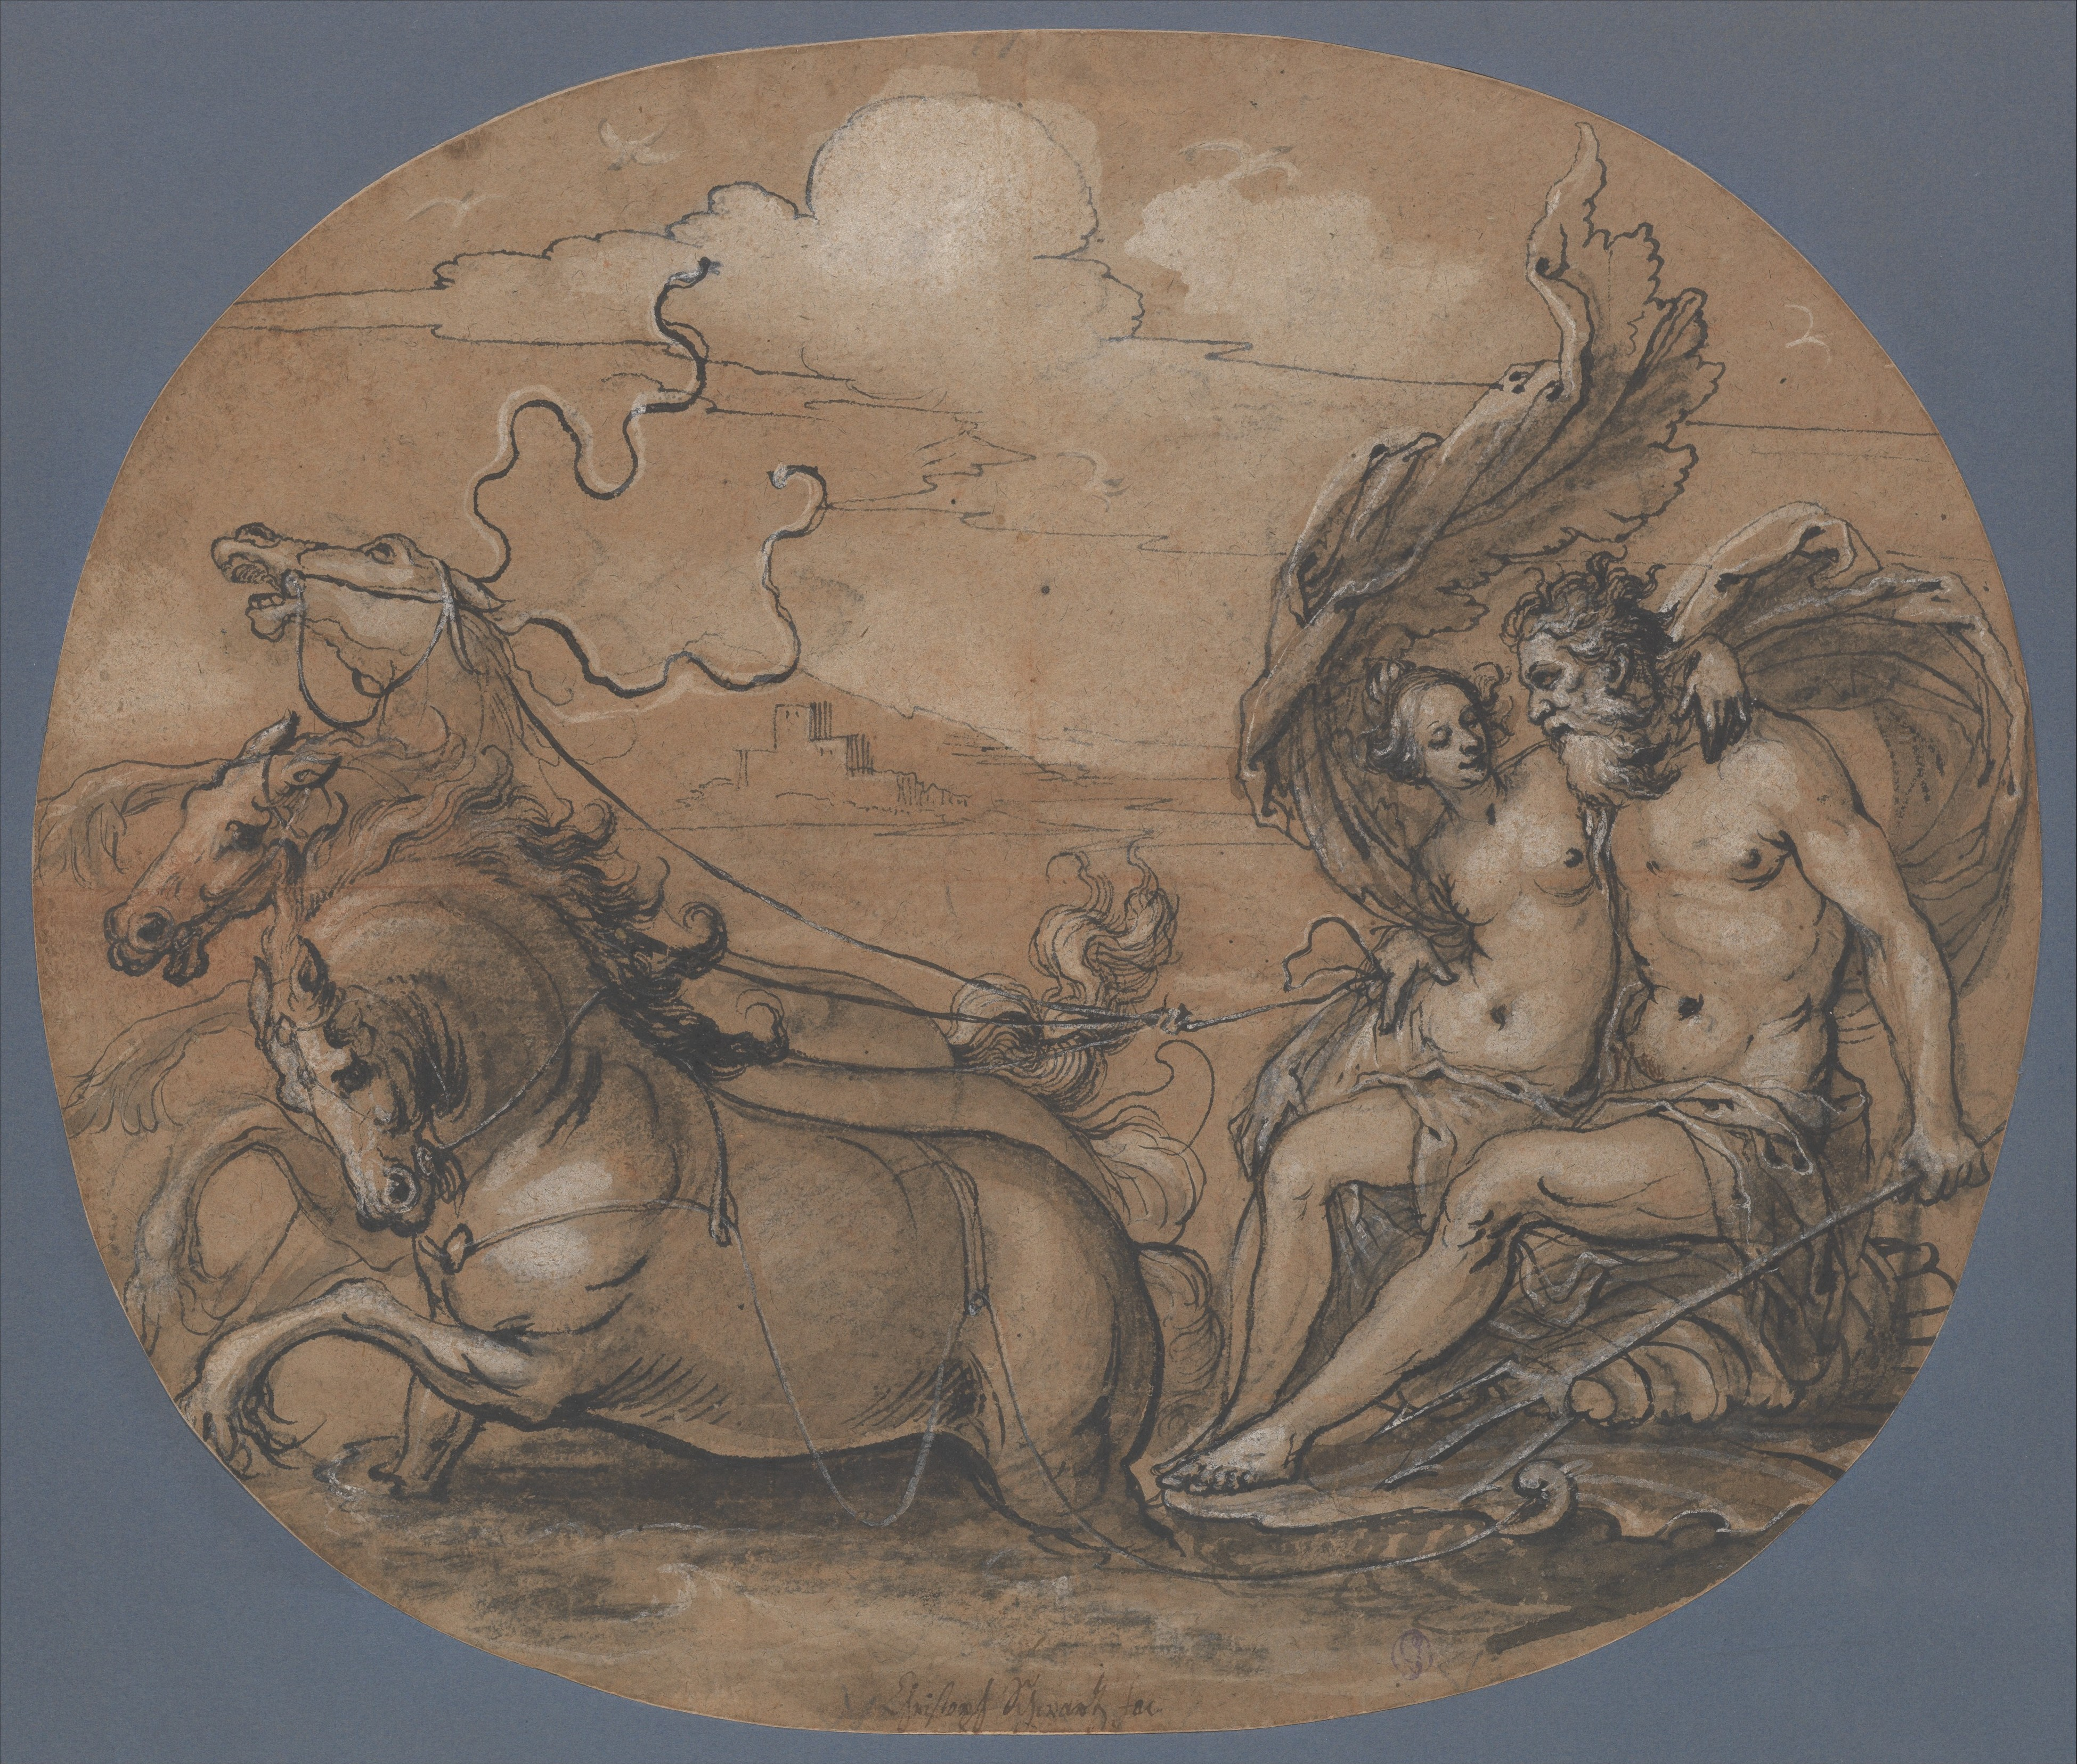 An image of Neptune and Amphitrite.